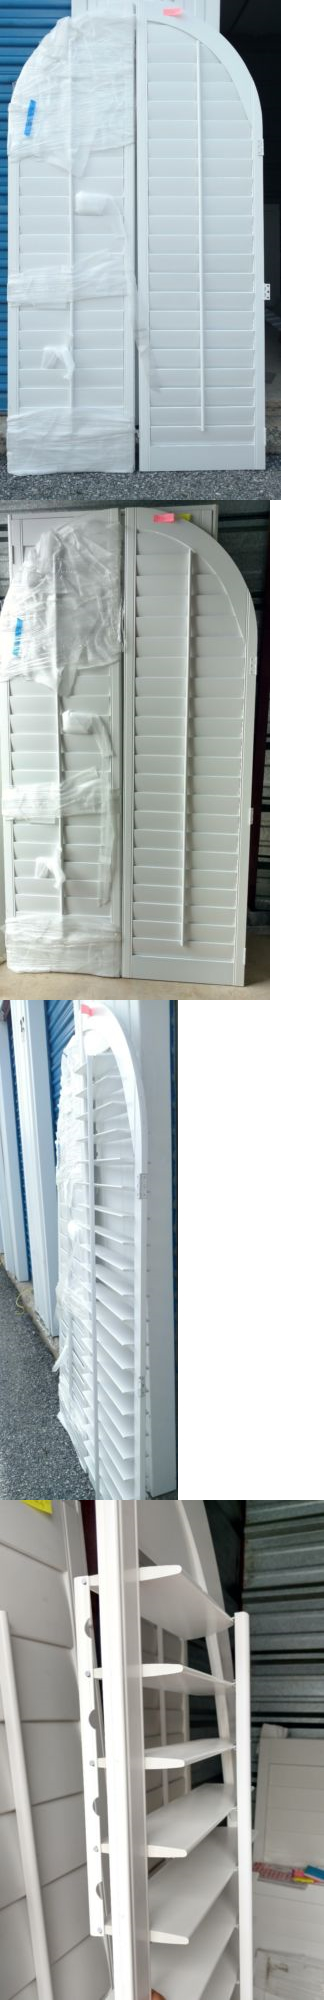 Shutters 66799: Interior Solid Wood Arched Plantation Shutters 4 1 2  Louvers White New